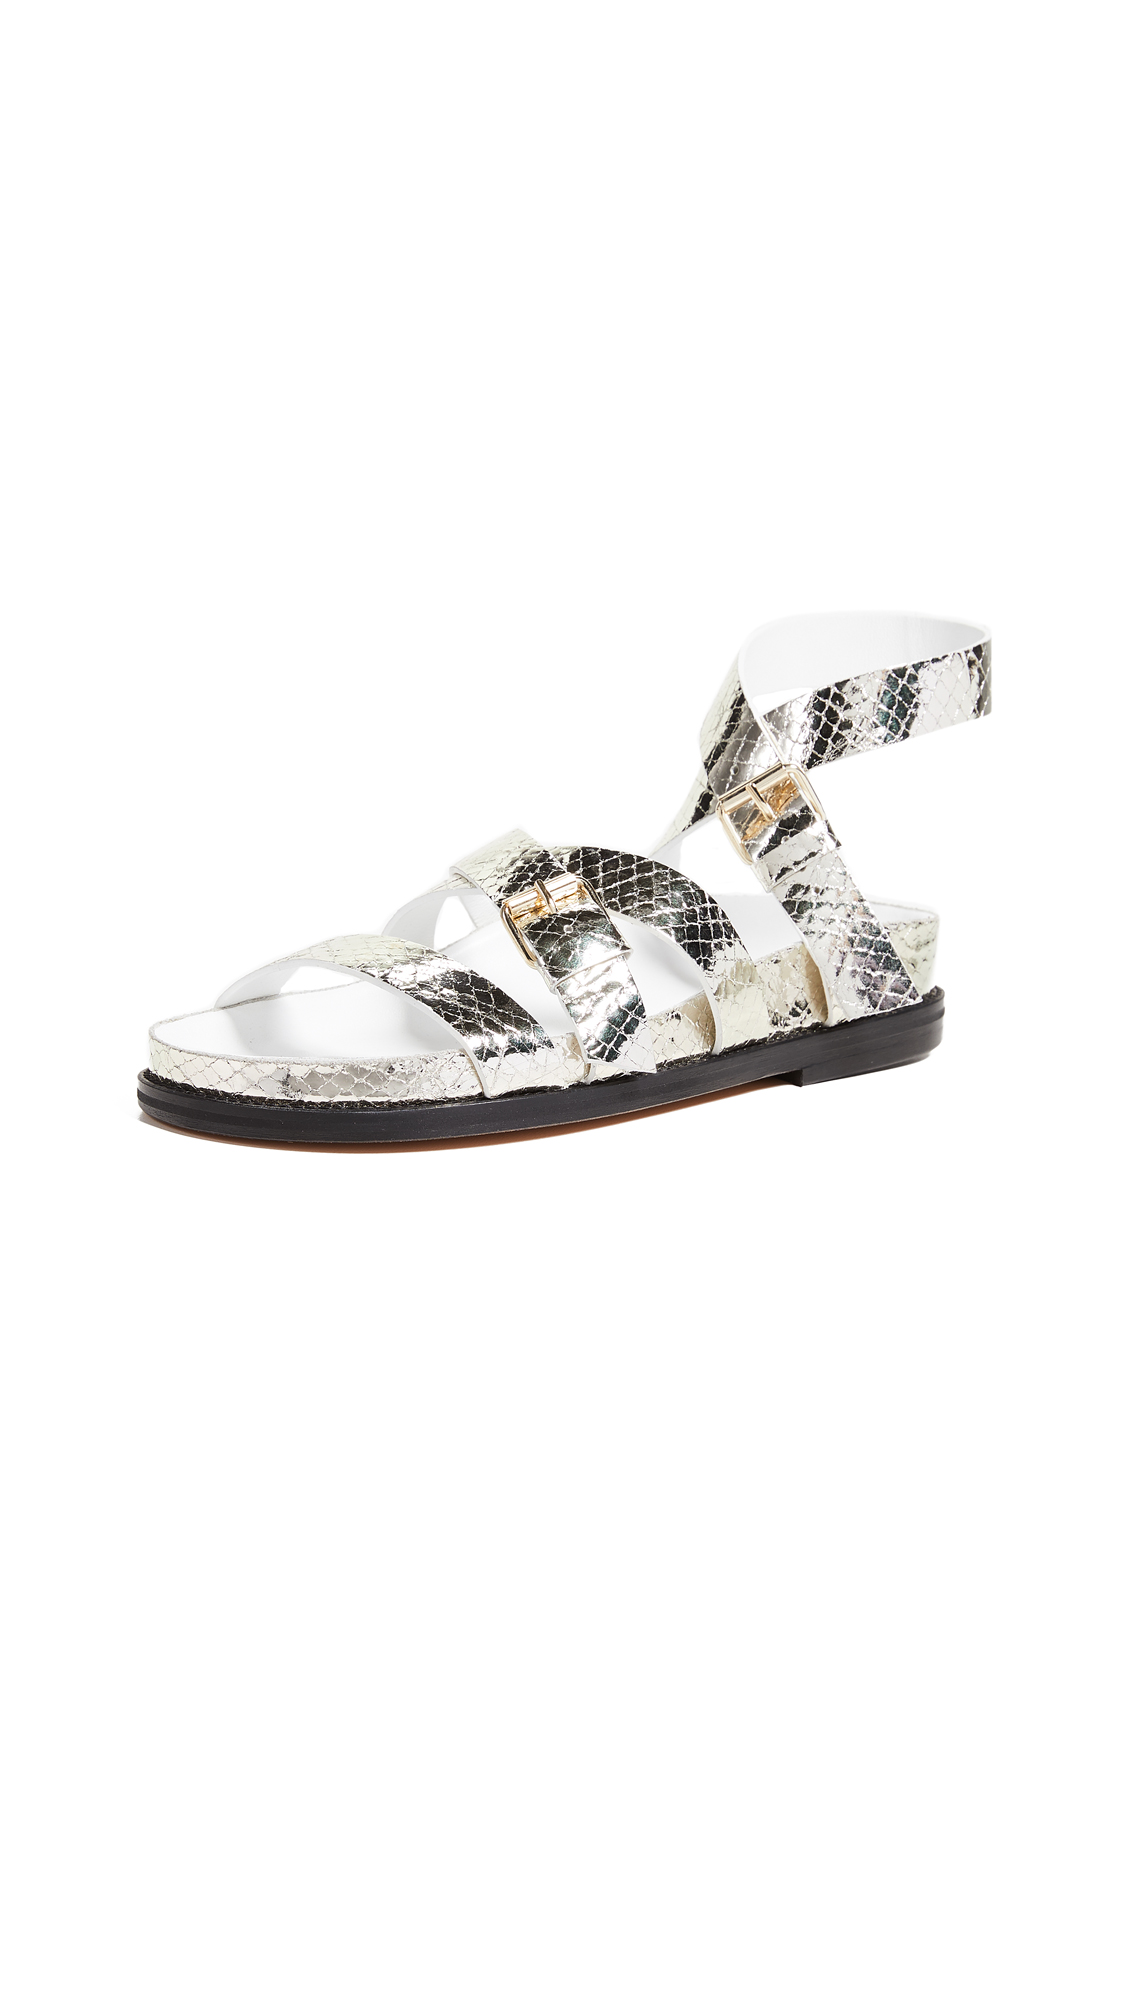 IRO Jilor Flat Sandals - Gold